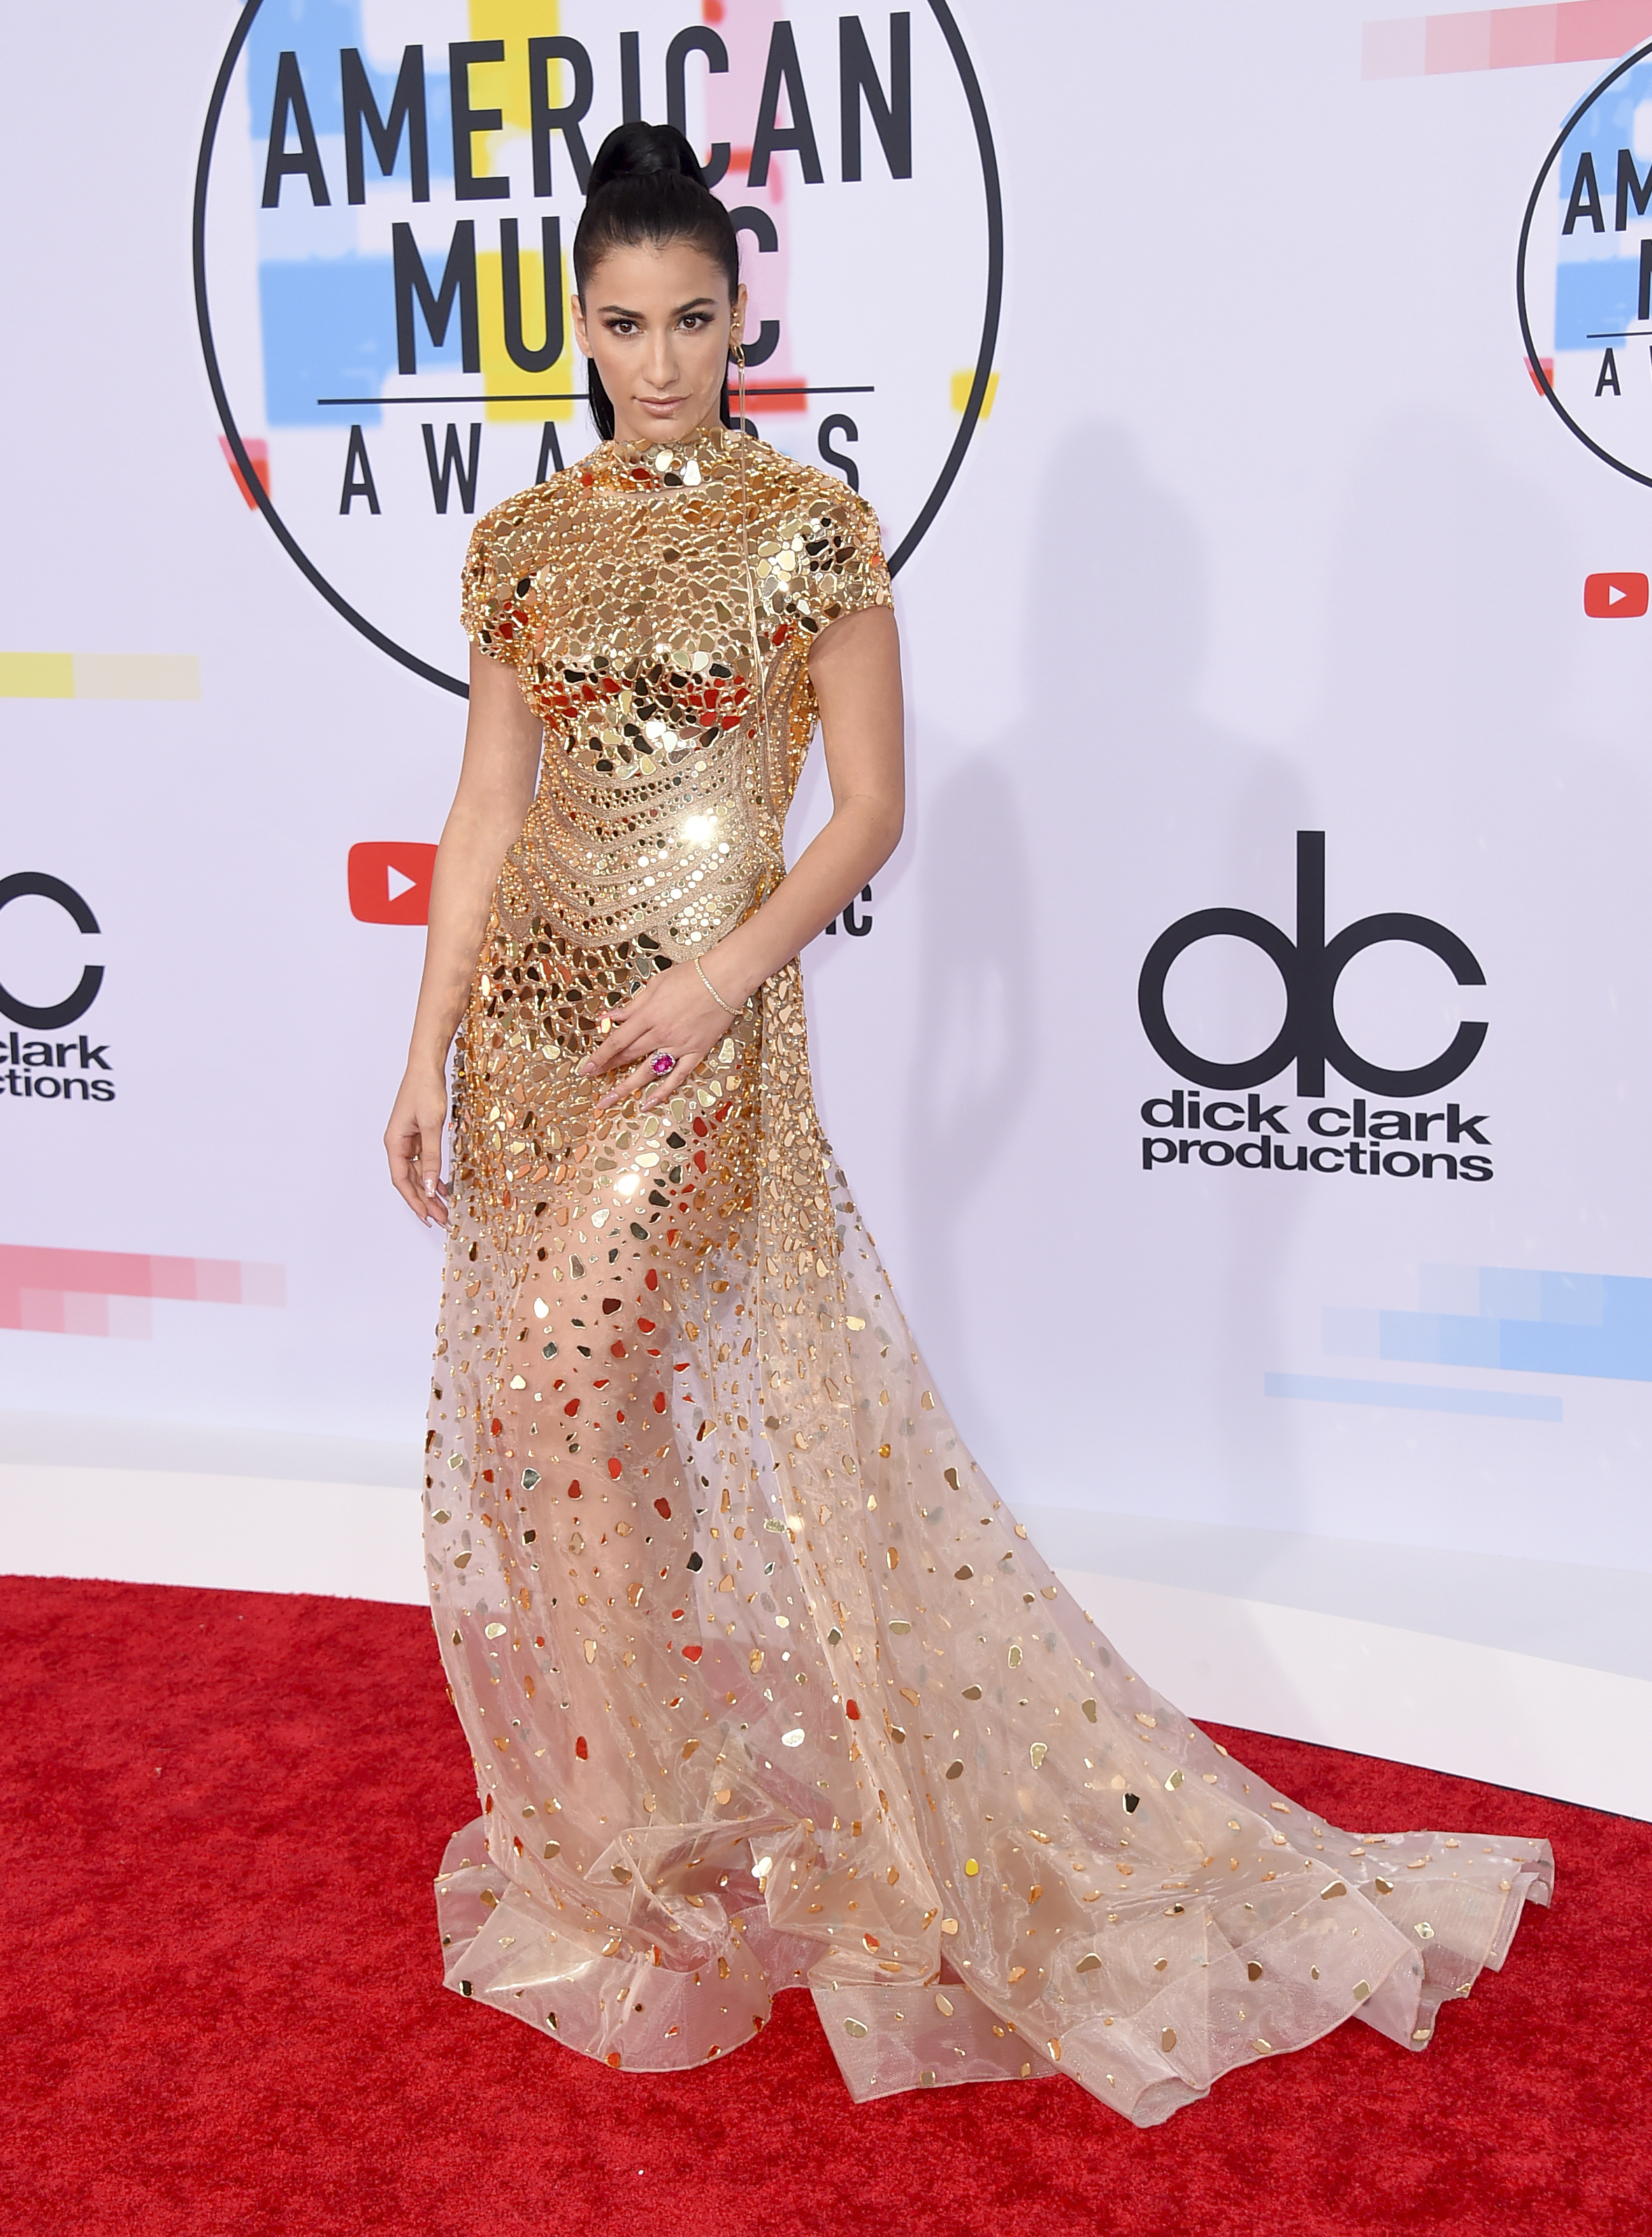 "<div class=""meta image-caption""><div class=""origin-logo origin-image none""><span>none</span></div><span class=""caption-text"">Lexy Panterra arrives at the American Music Awards on Tuesday, Oct. 9, 2018, at the Microsoft Theater in Los Angeles. (Jordan Strauss/Invision/AP)</span></div>"